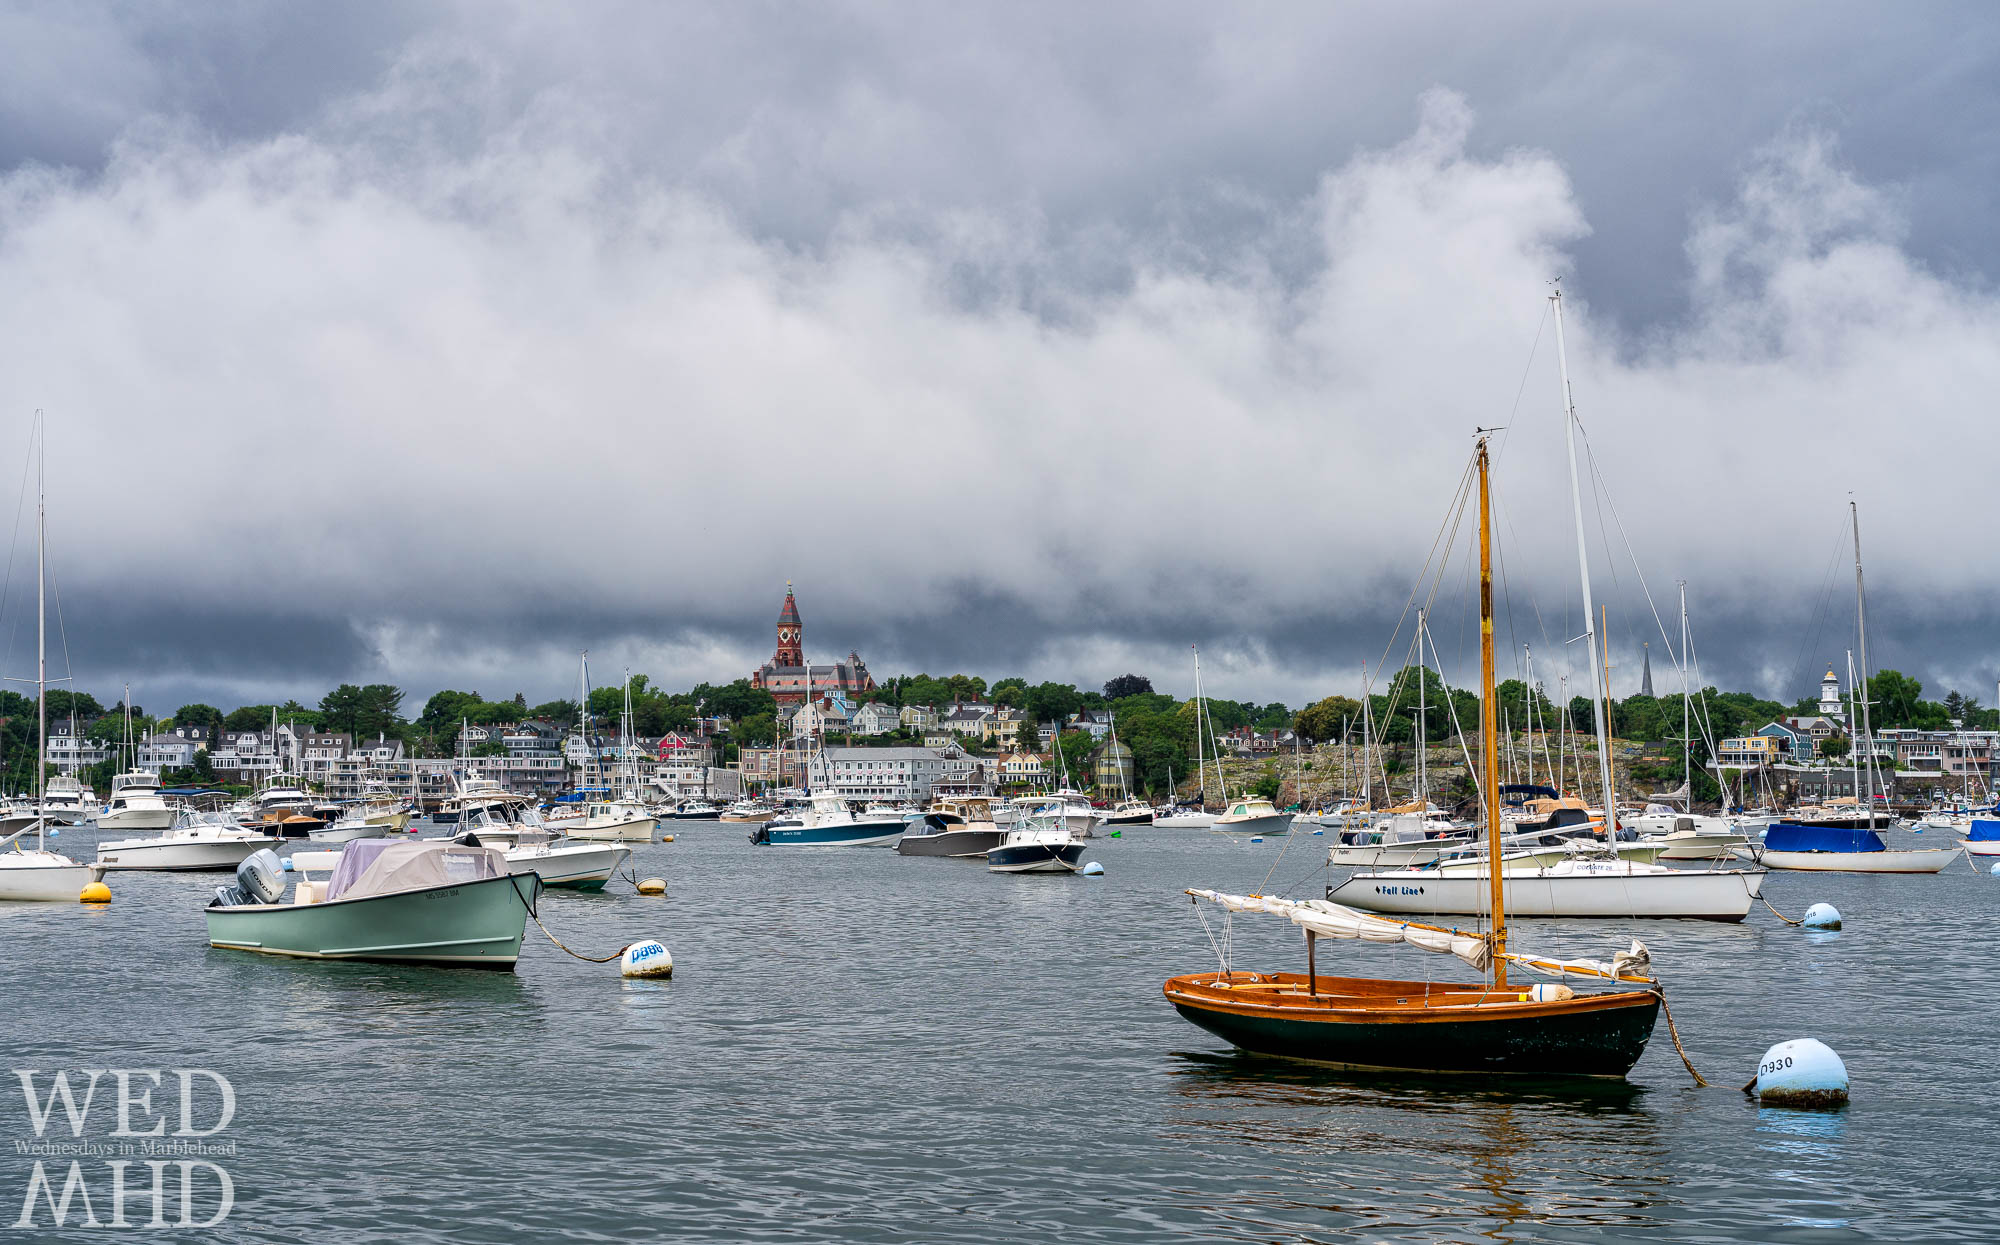 It was a wet Fourth of July in Marblehead but I found this scene between the raindrops as seen from the Pleon Yacht Club dock